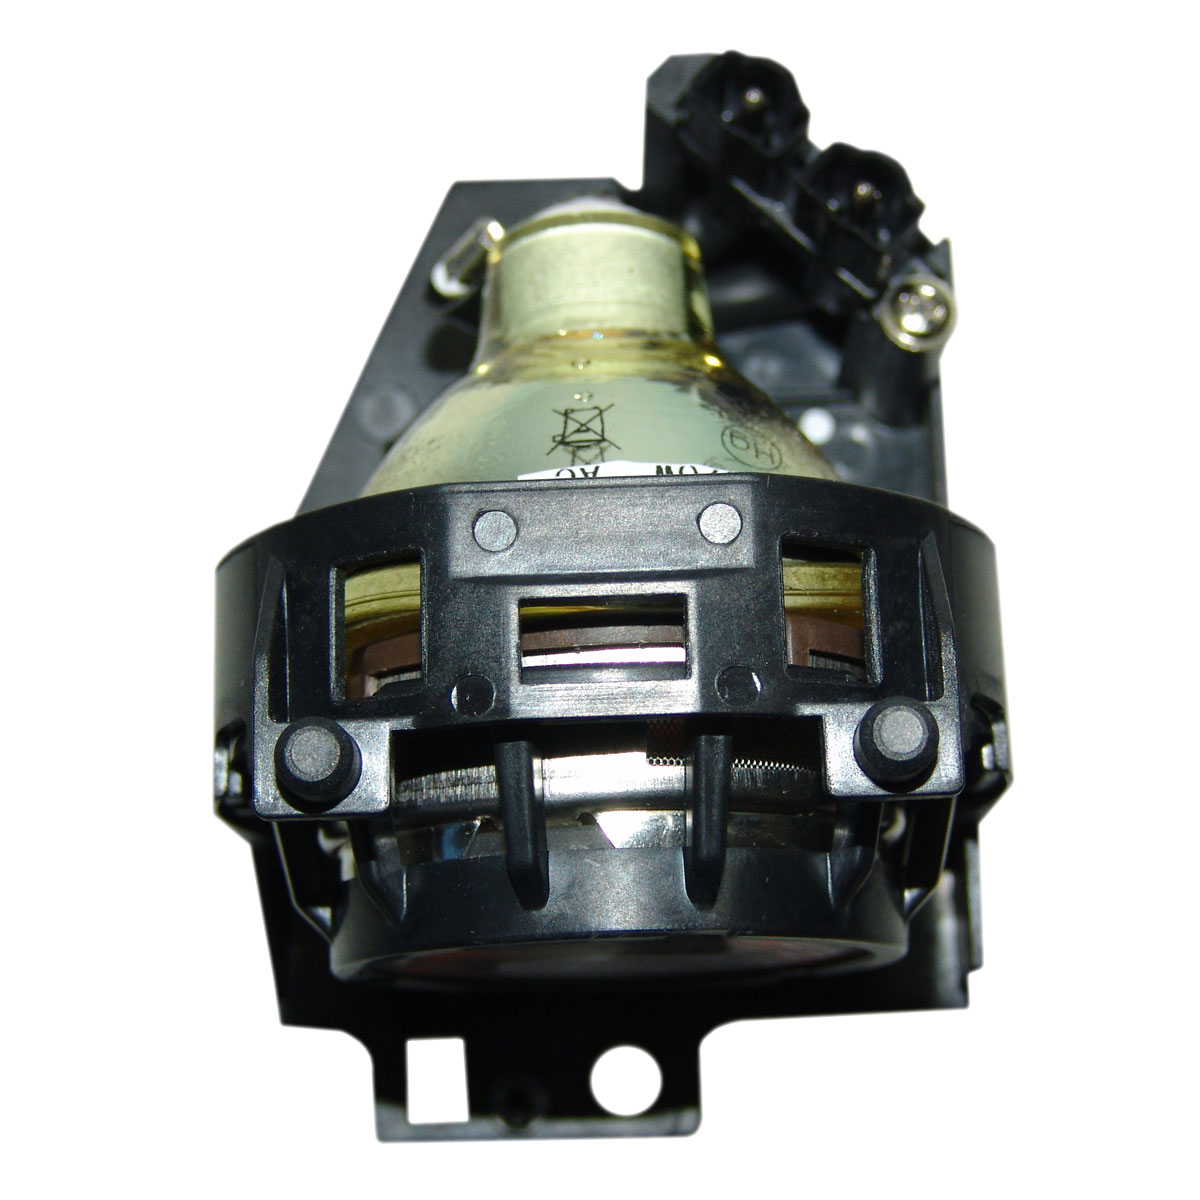 Lutema Economy for Viewsonic PJ510 Projector Lamp with Housing - image 1 de 5